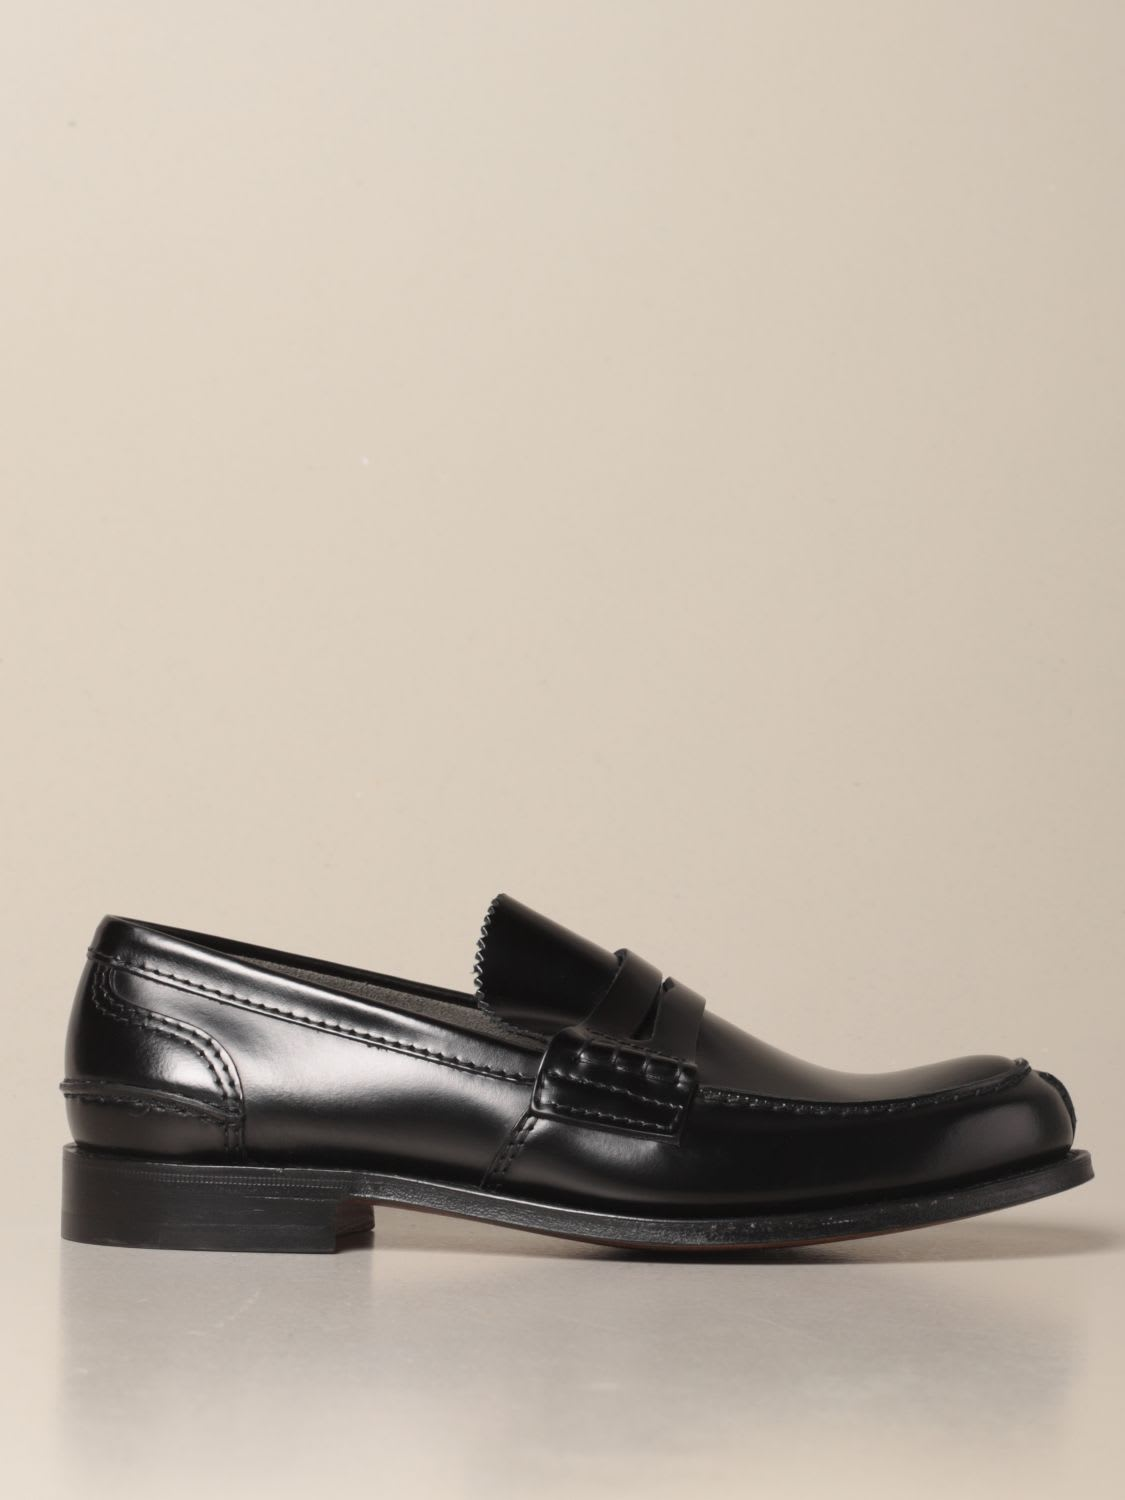 Churchs Loafers Churchs Tunbridge Loafer In Brushed Leather